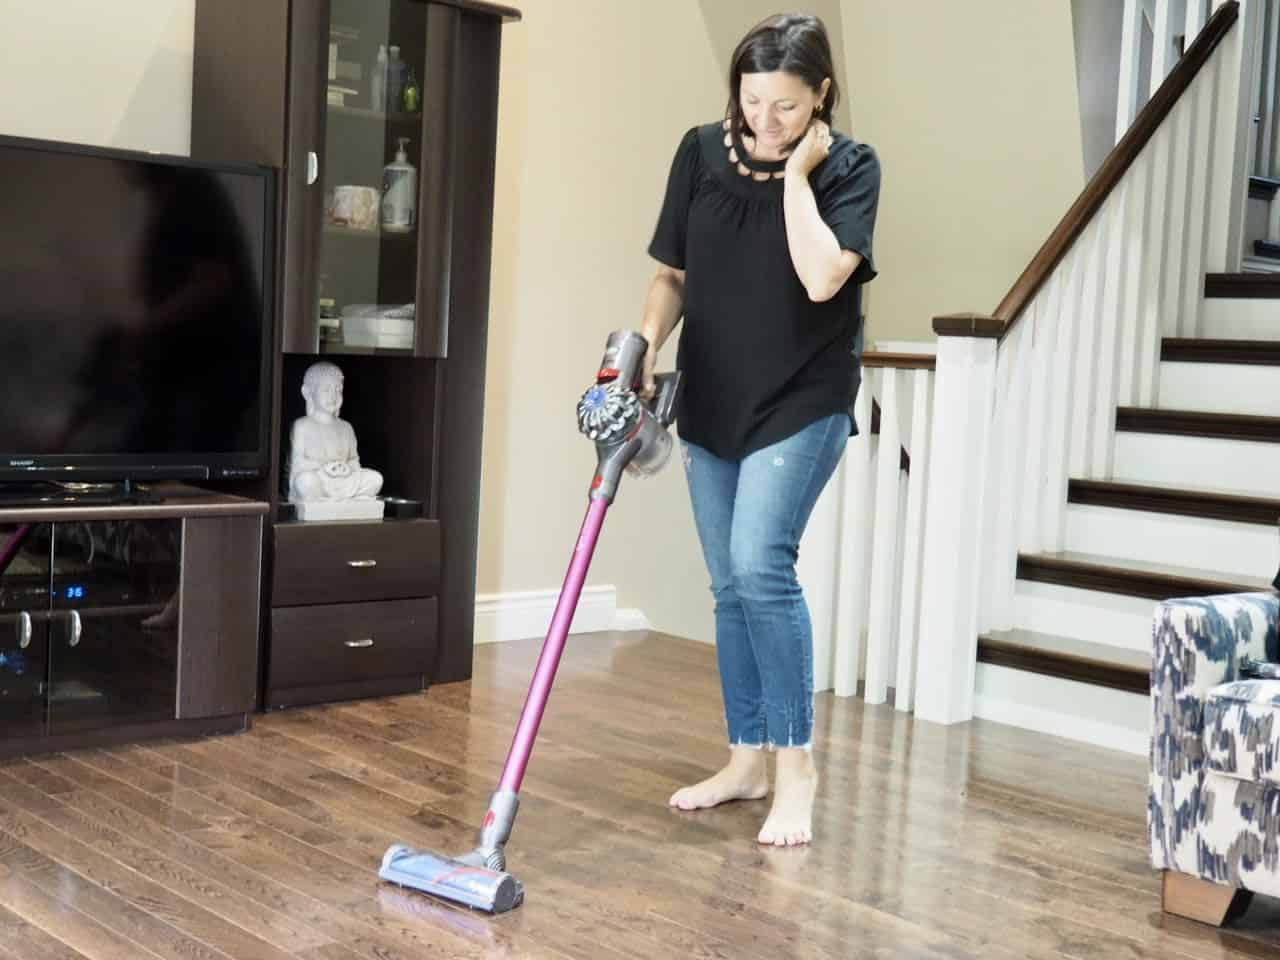 dyson v7 animal pro transforms the way you clean diana 39 s healthy living. Black Bedroom Furniture Sets. Home Design Ideas